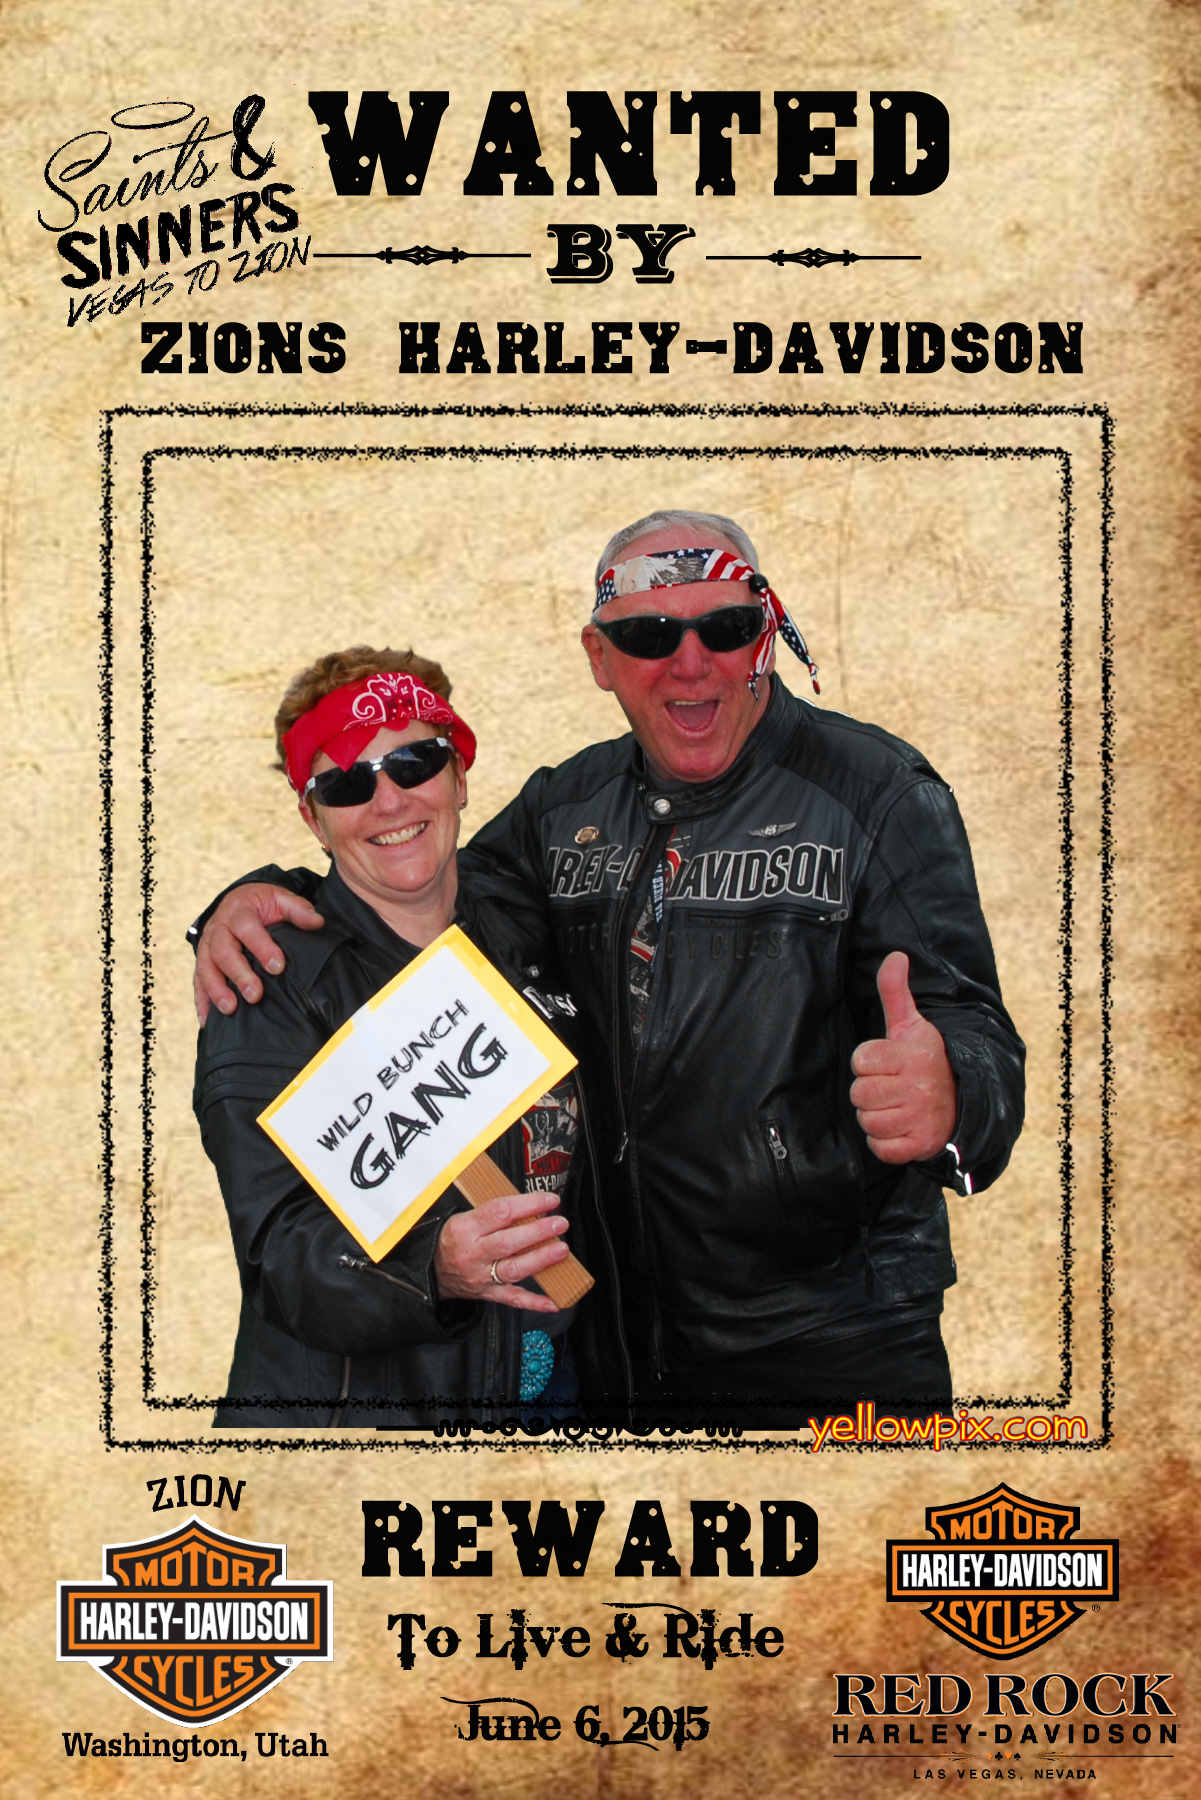 2015 Zions Harley-Davidson Photo  ED0606125210